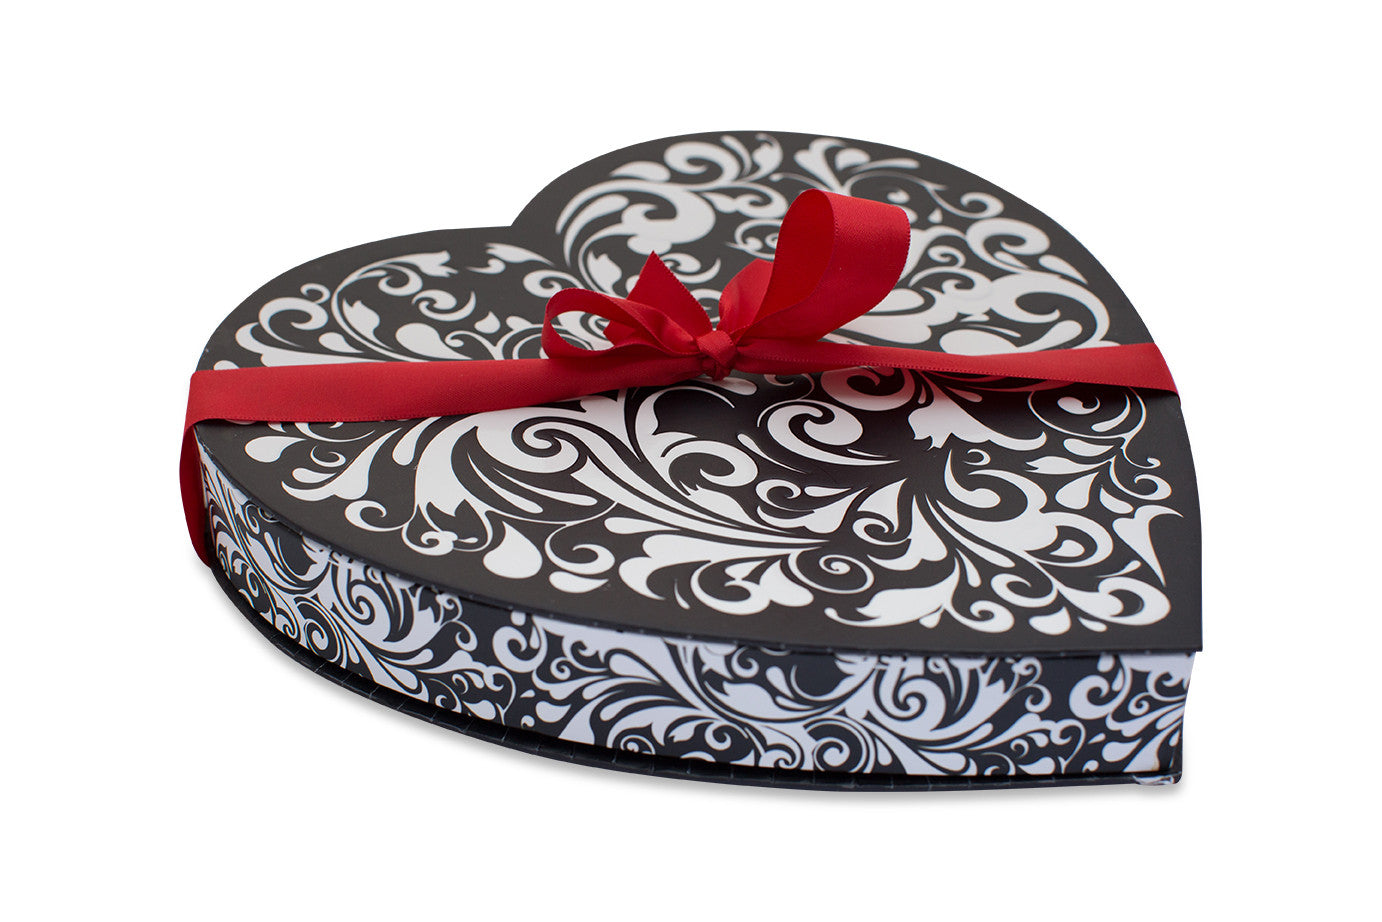 Big Love Heart Chocolate Box 32 Pc Pick Me Up Chocolate